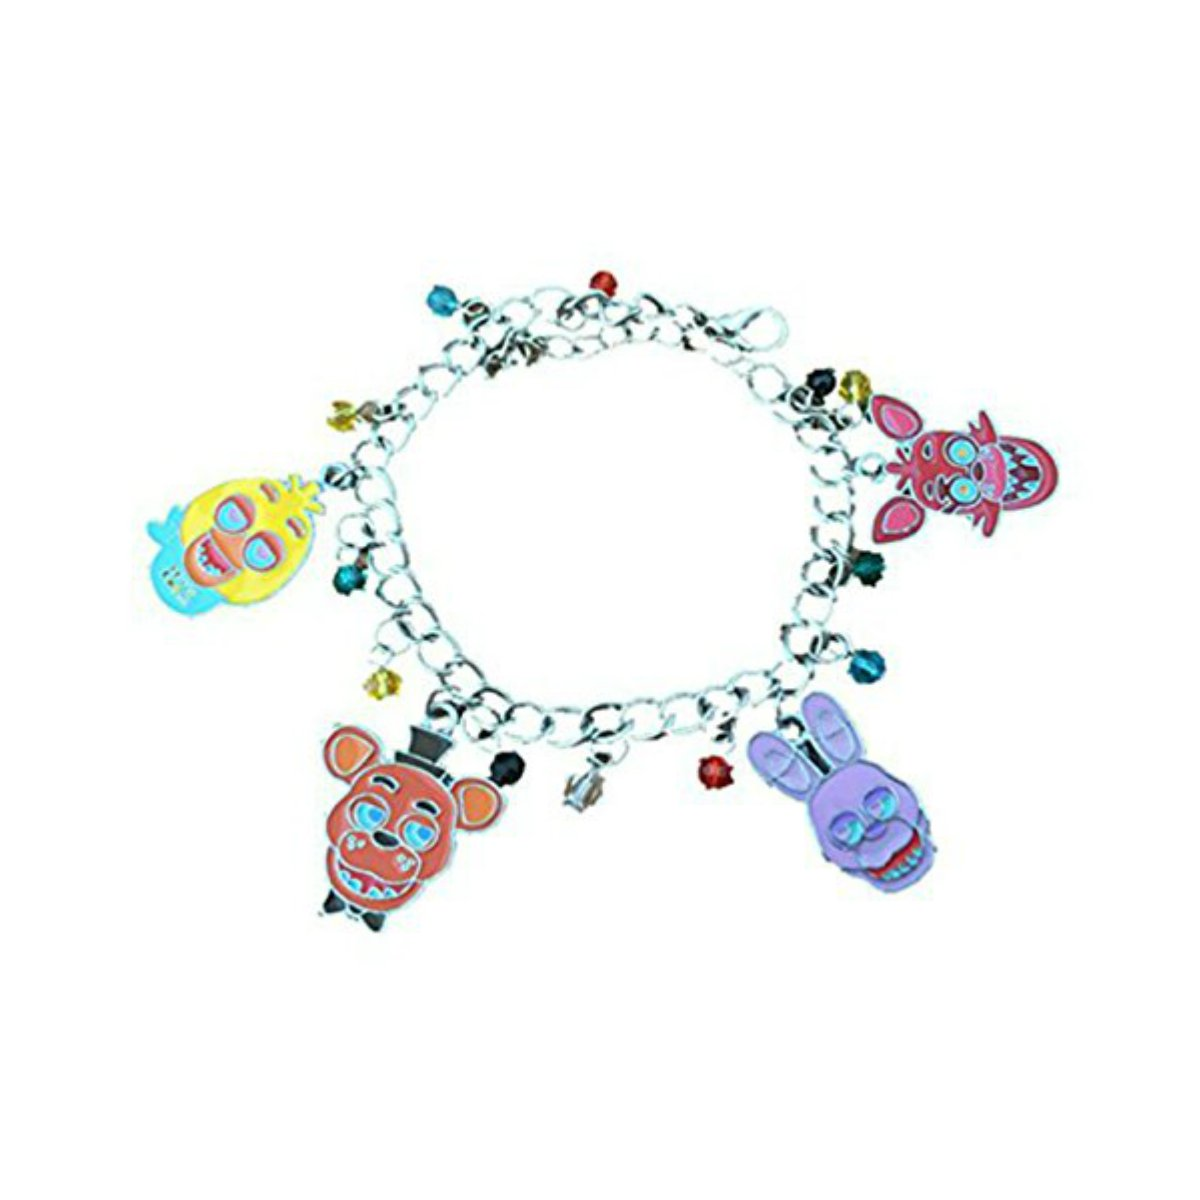 US FAMILY Five Nights at Freddy's FNAF Game Theme Multi Charms Jewelry Bracelets Charm by Family Brands